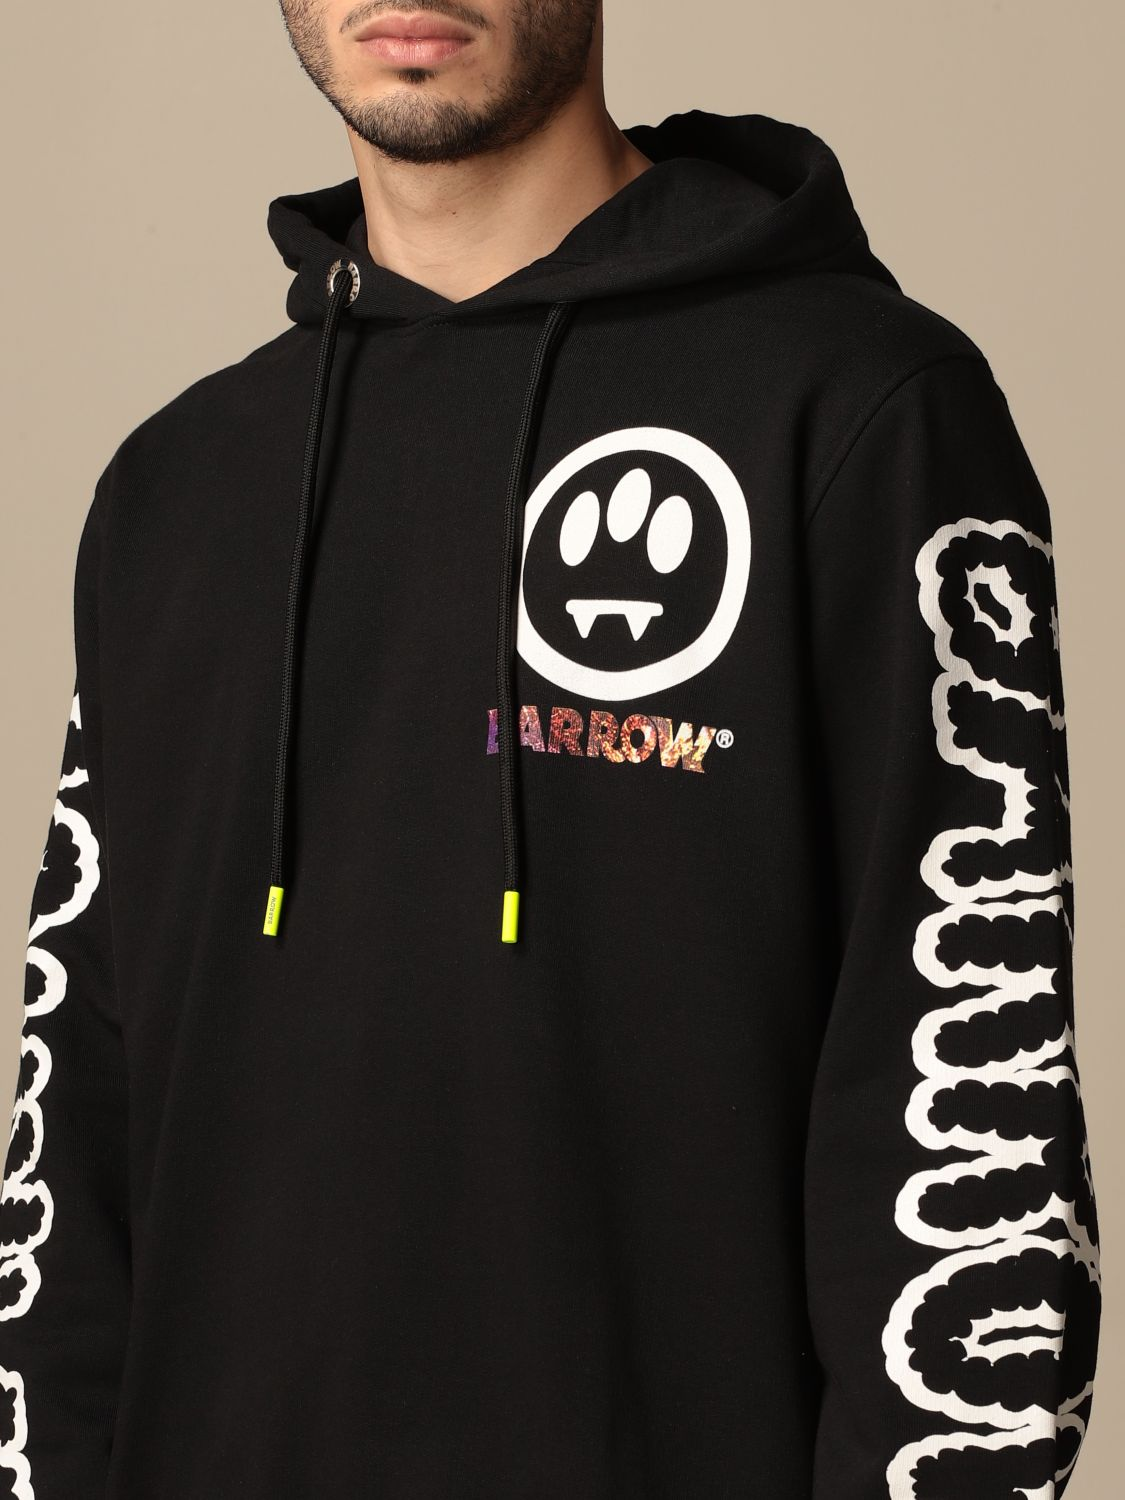 Sweatshirt Barrow: Sweatshirt men Barrow black 3